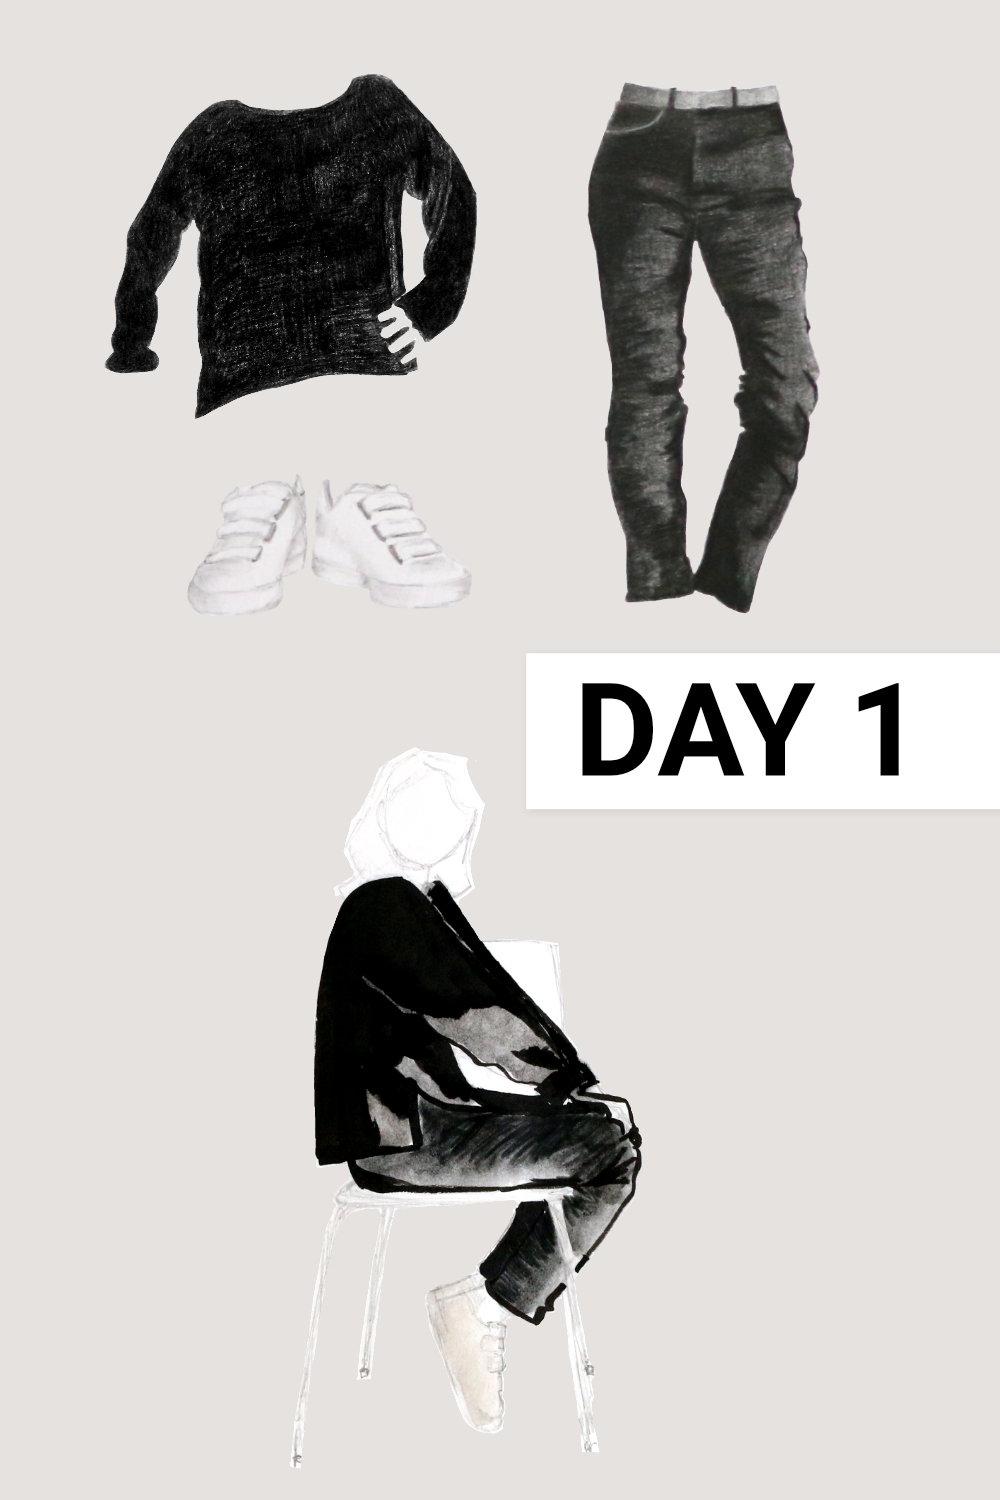 Day 1: Black boatneck ( Everlane , Black Cashmere Rib Boatneck, size M), black jeans ( Everlane , Authentic Stretch High-Rise Cigarette, size 31), white sneakers ( Veja , White Esplar Leather 3-Lock)    Drawing a Capsule Wardrobe , by The Daily Atelier #10x10Friends #Winter10x10 #StyleBee10x10